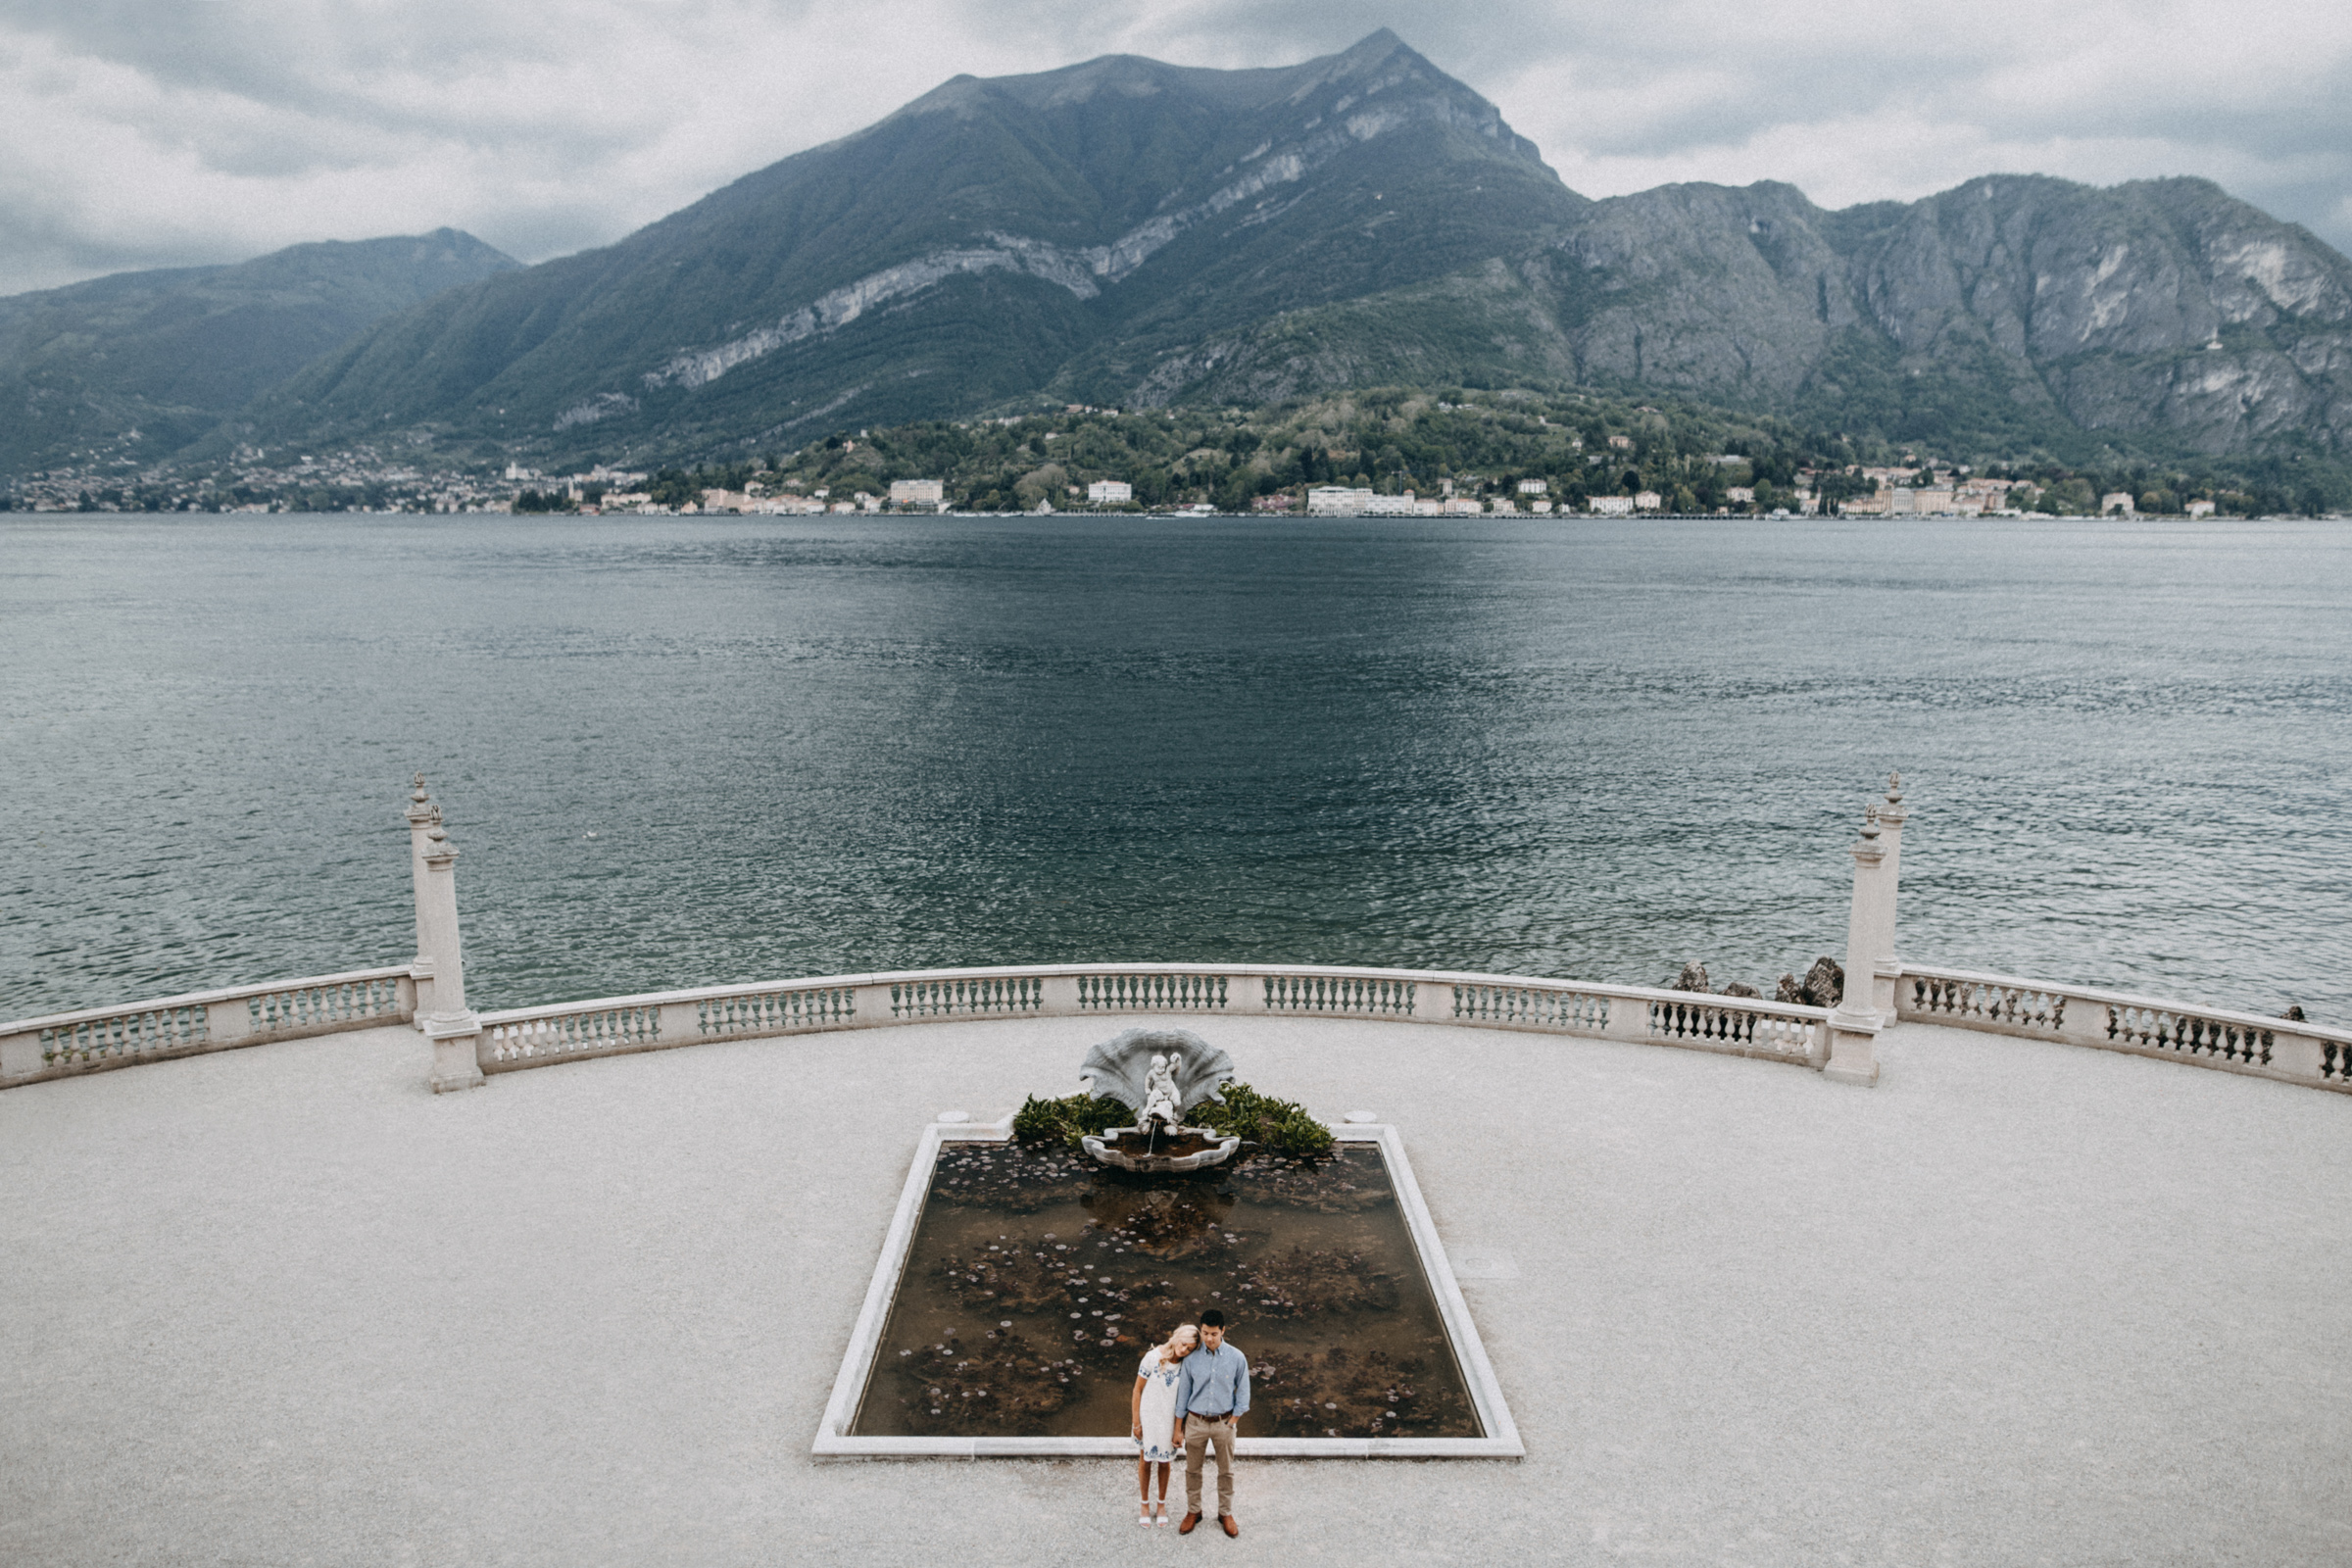 shannon & koji - Our newest story from Lake Como